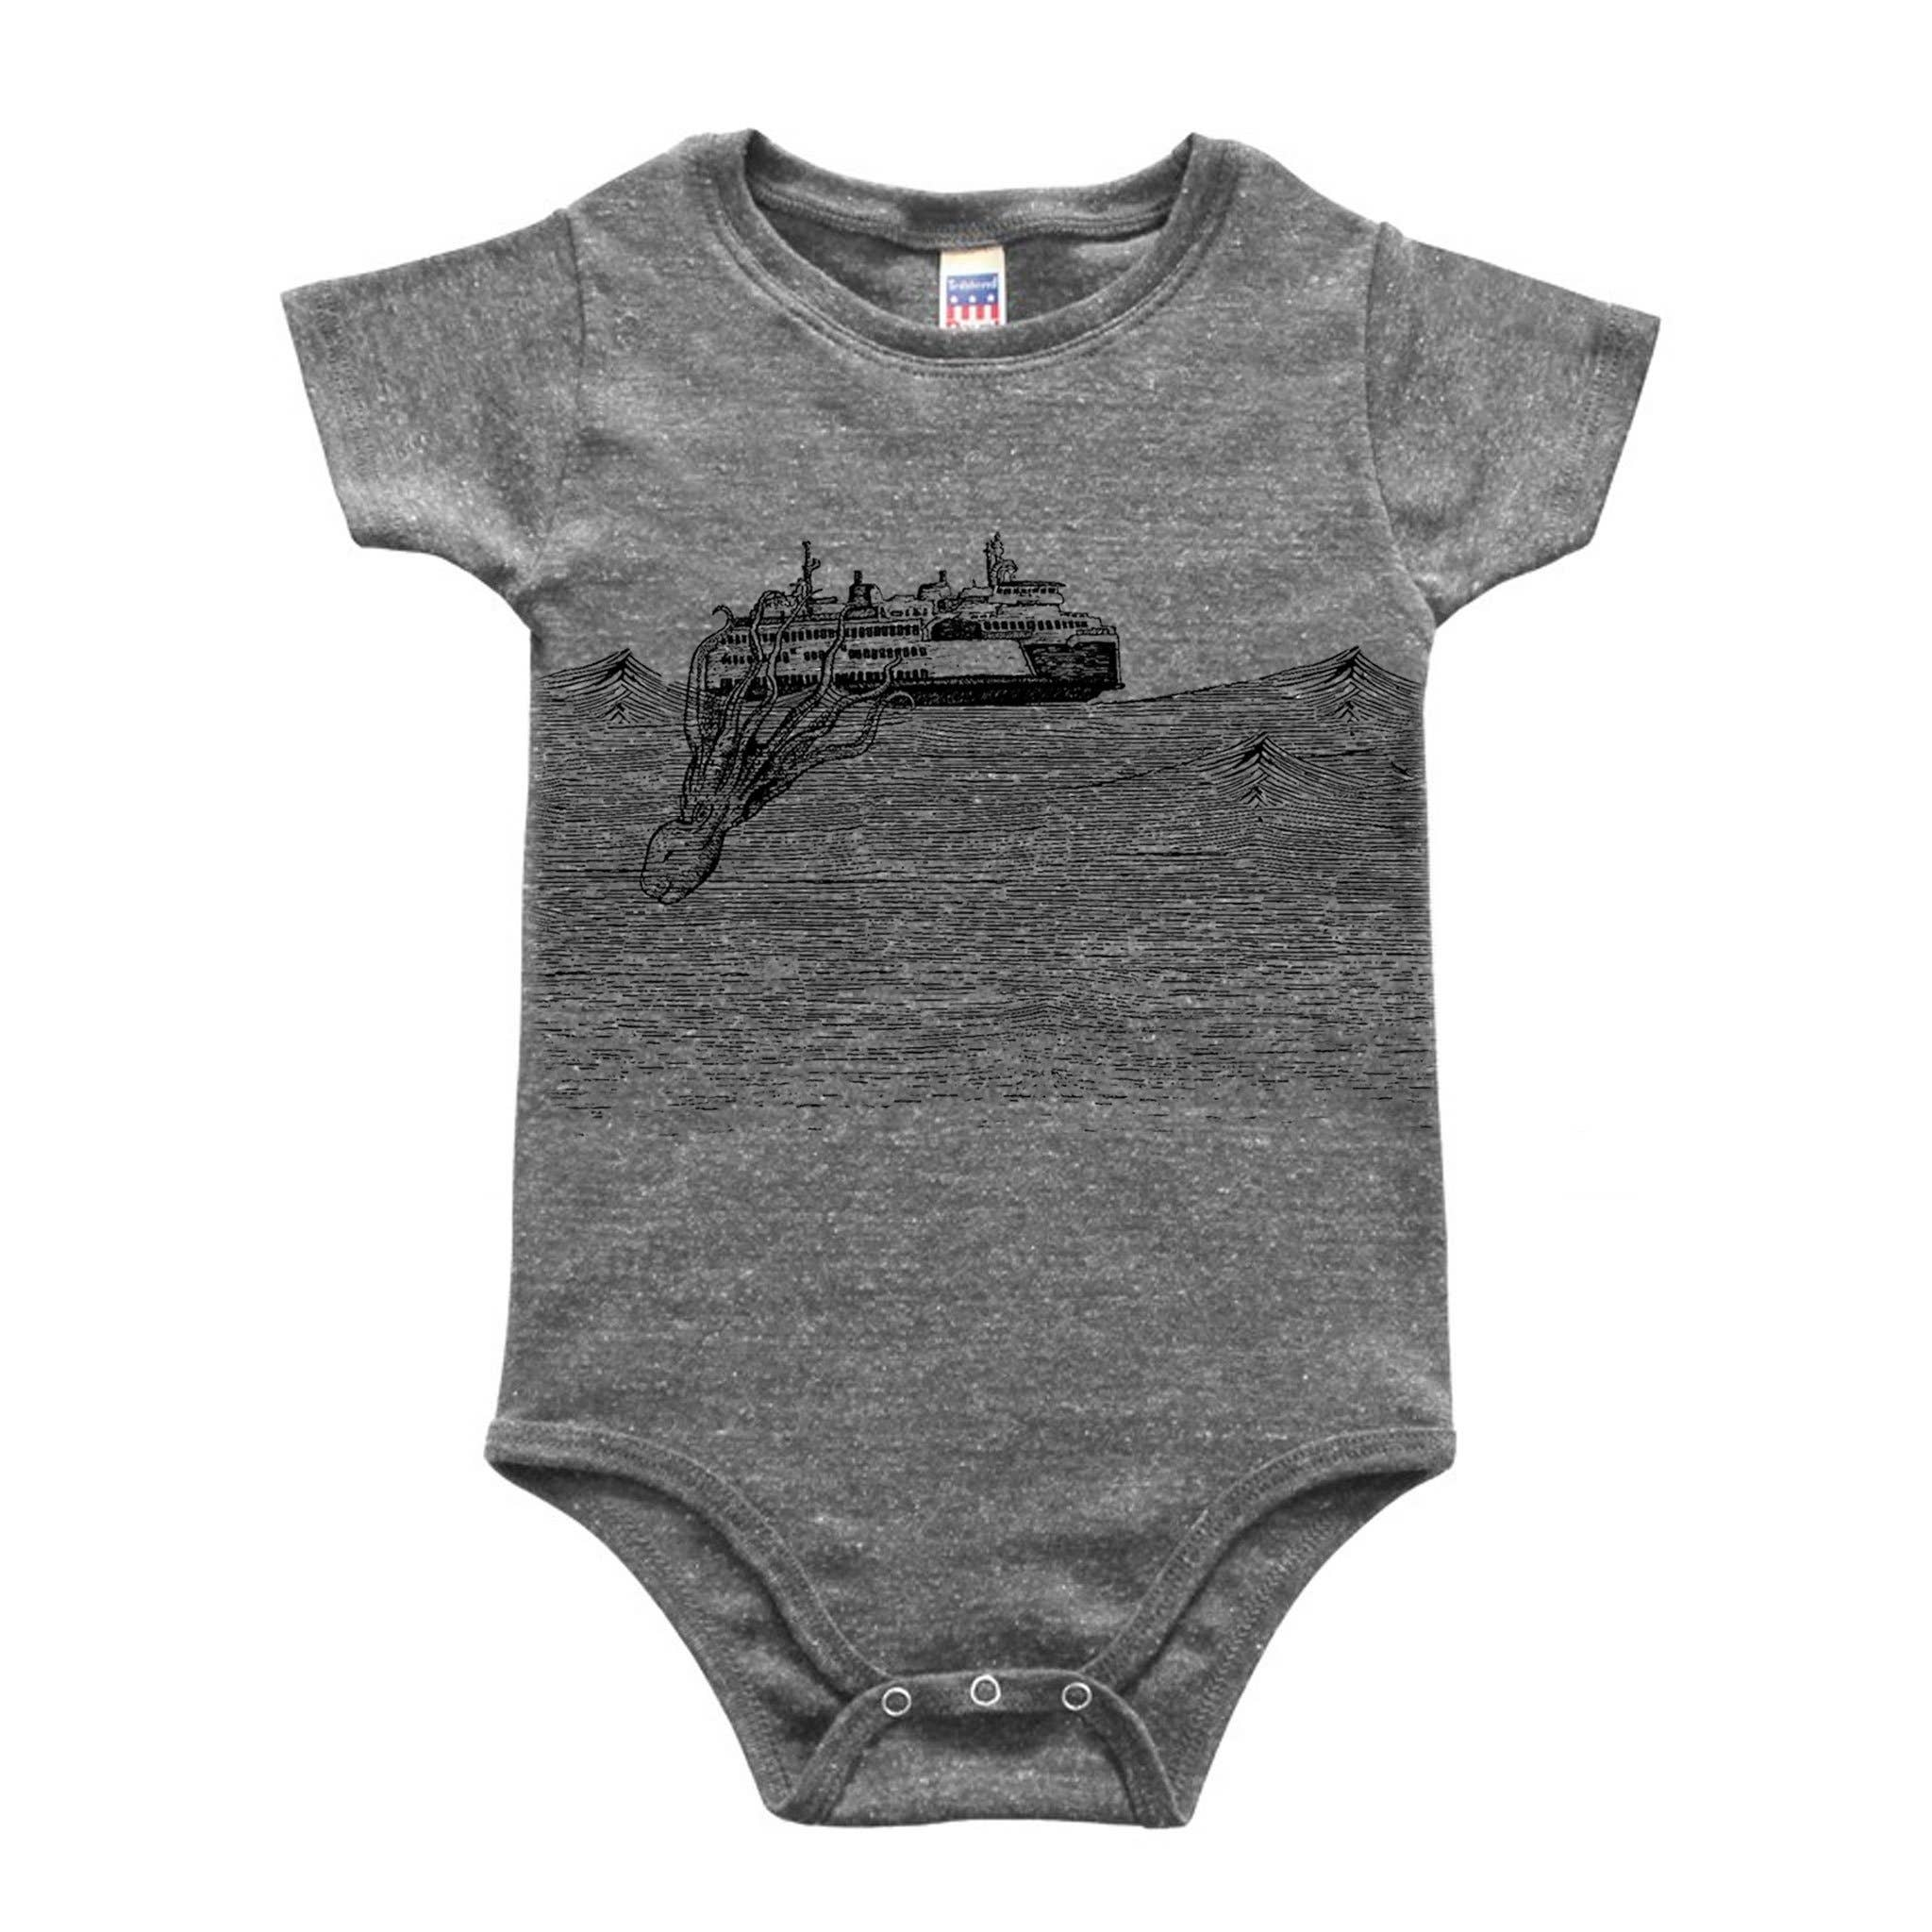 Now Register to Vote White Bodysuit Baby Girl Cute Infant